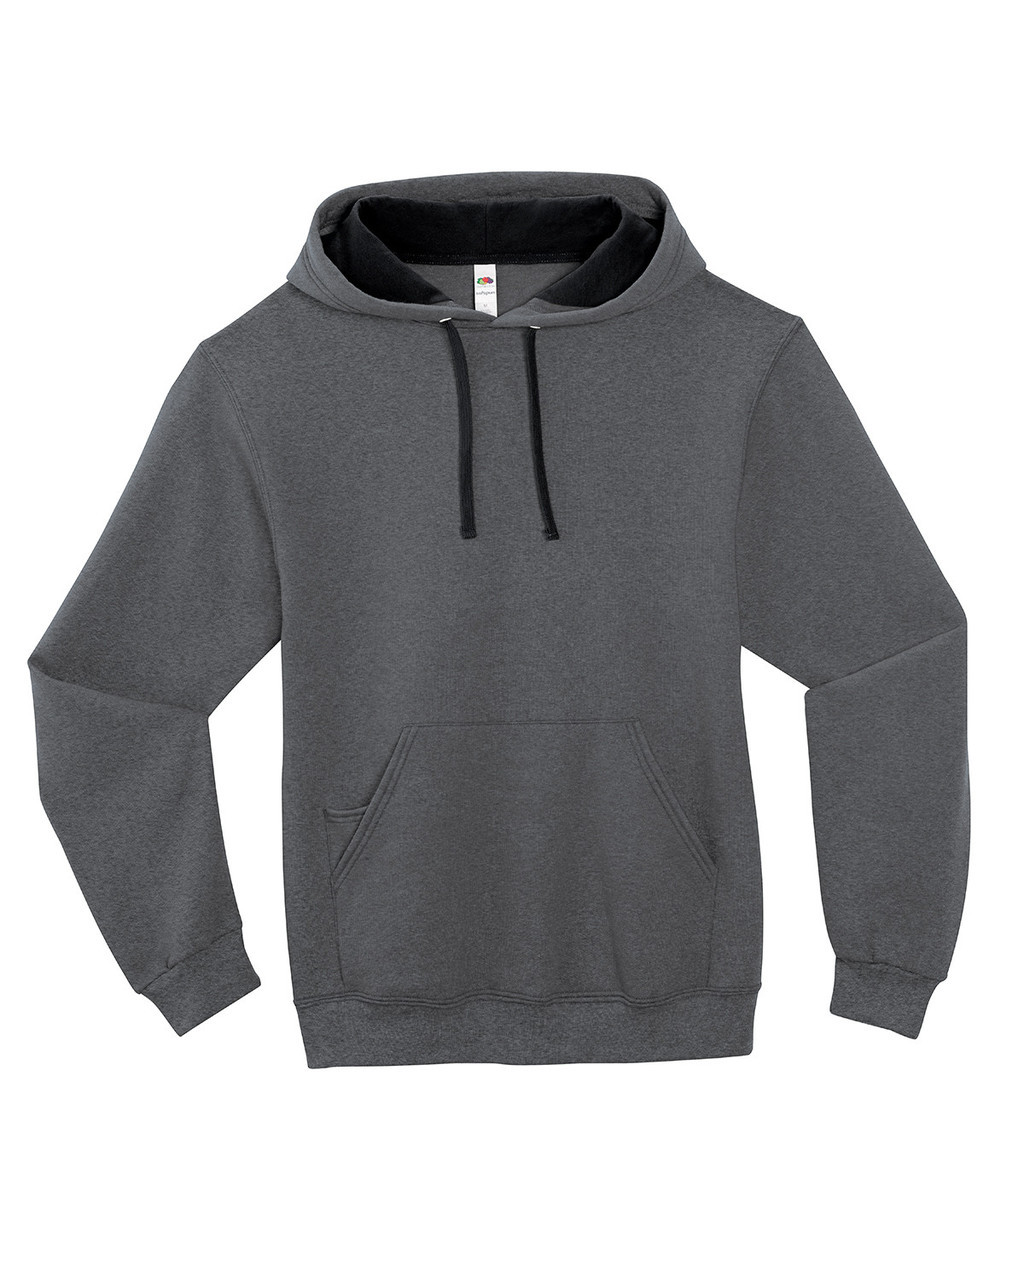 Charcoal Heather -SF76R Fruit of the Loom Softspun Hooded Sweatshirt | Blankclothing.ca